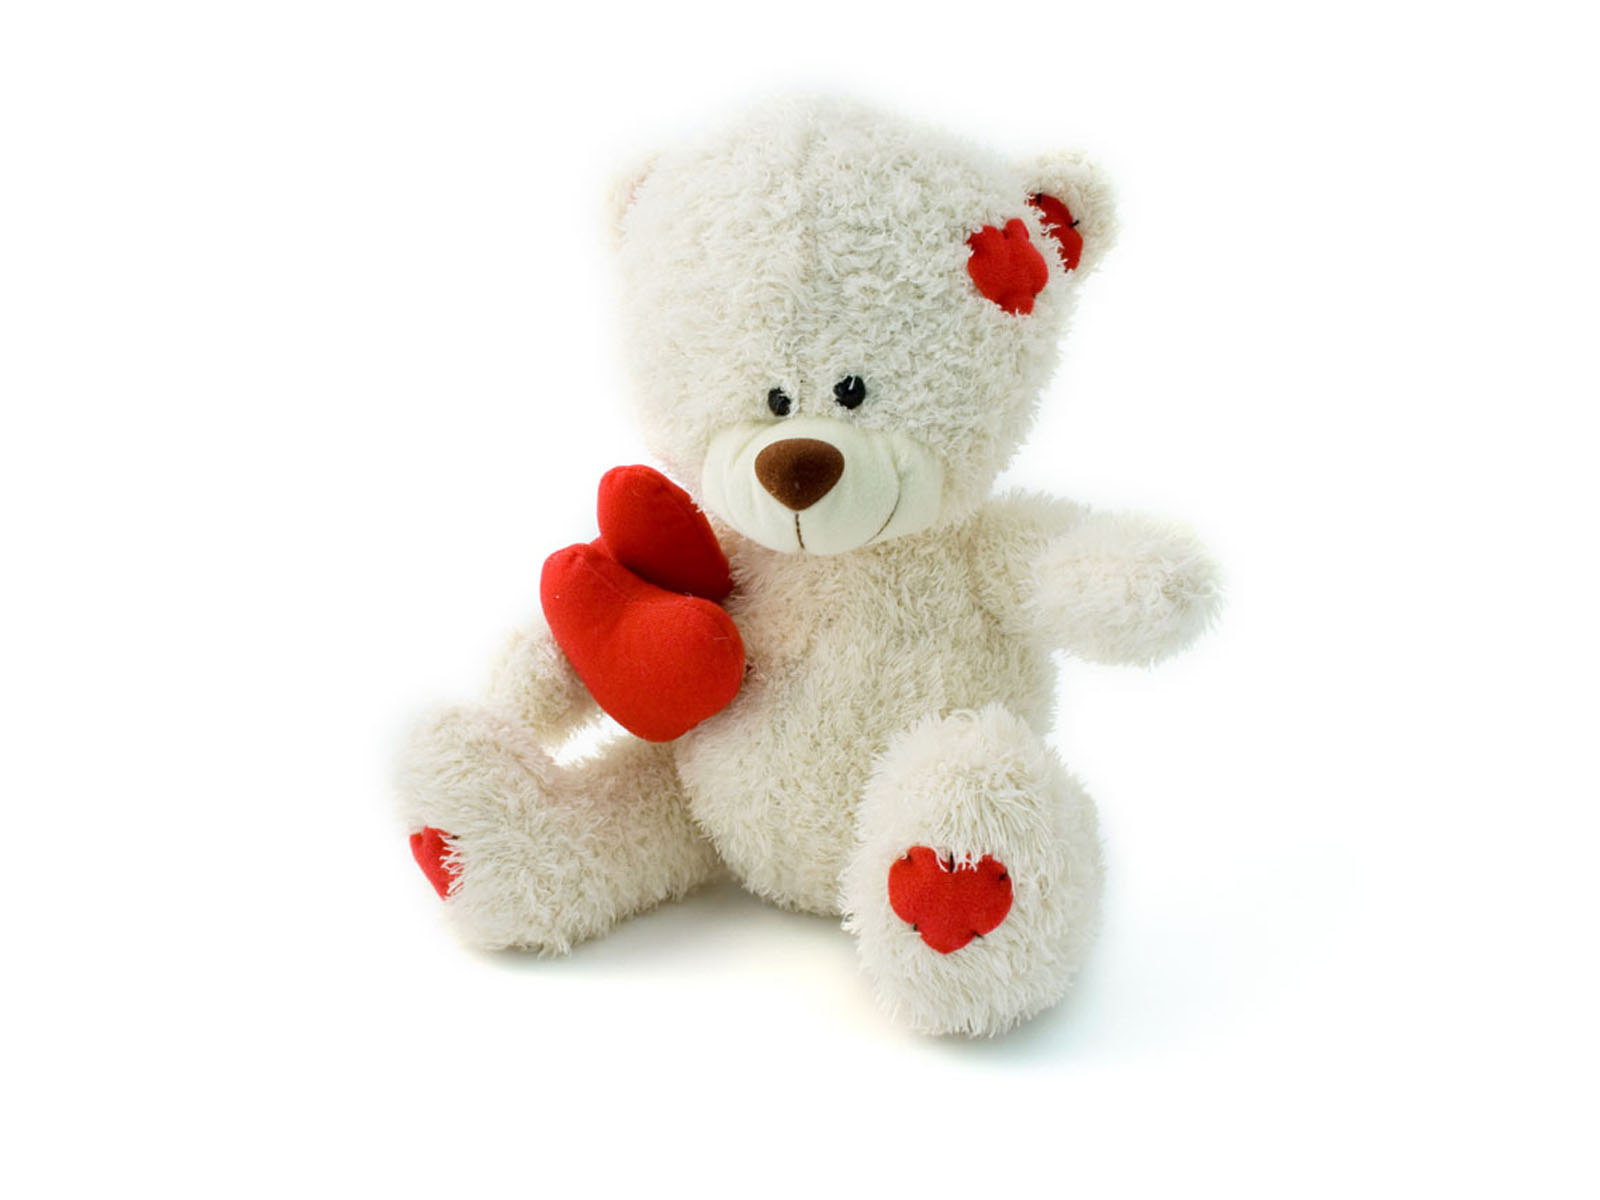 Love Teddy Bear Hd Wallpaper : wallpapers: Love Teddy Bear Wallpapers